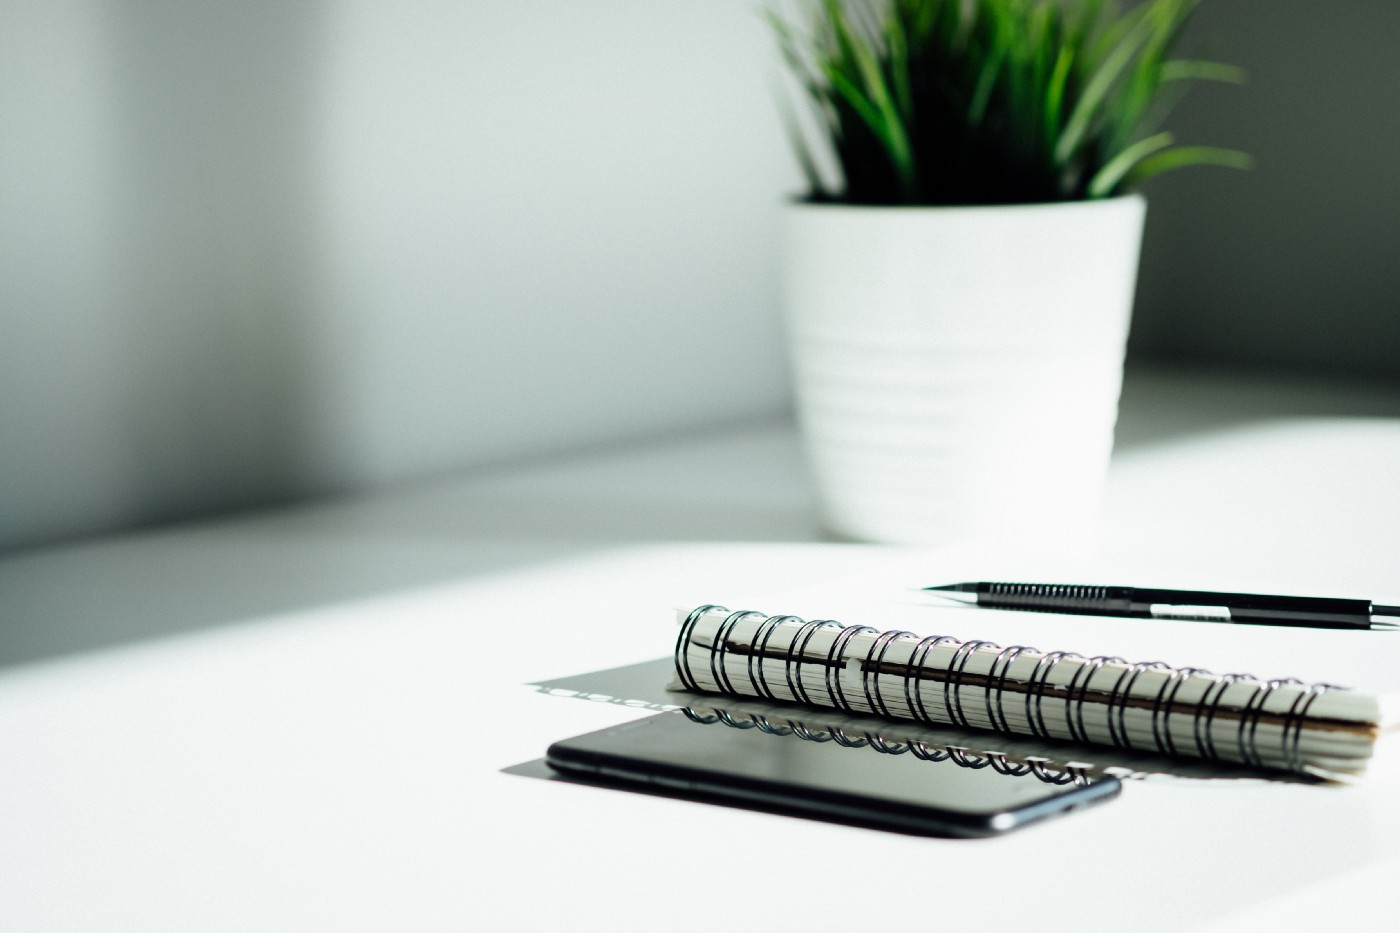 A stock photo. There is a smartphone sitting face-up on a desk beside a opened spiral coiled notebook. There is a black ballpoint pen resting on top of the notebook. In the background, there is a succulent in a white ceramic pot.